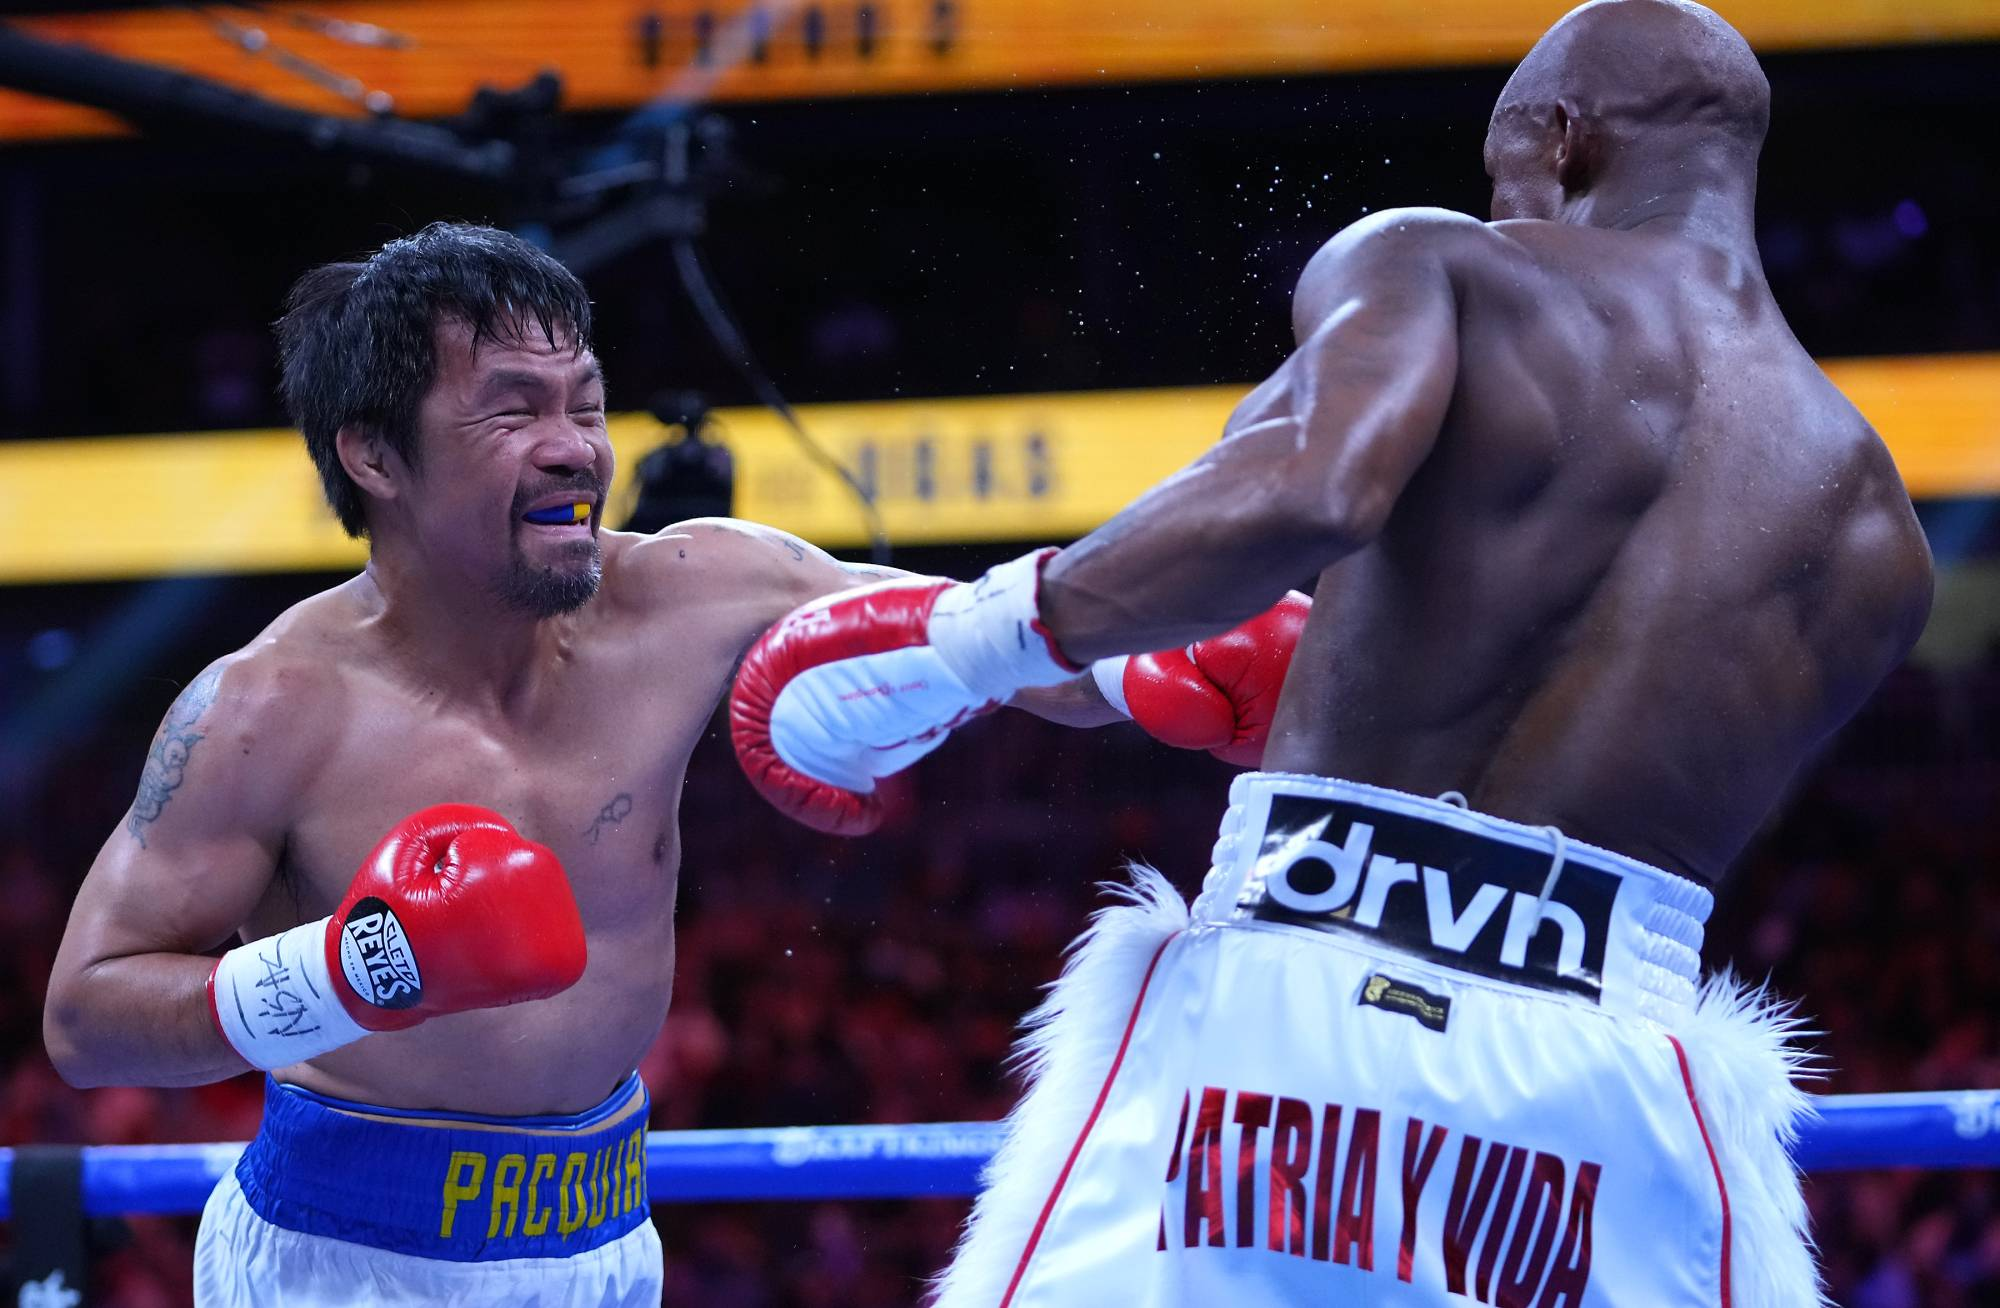 Manny Pacquiao (left) fights Yordenis Ugas in their championship bout at T-Mobile Arena in Las Vegas on Saturday.    USA TODAY / VIA REUTERS